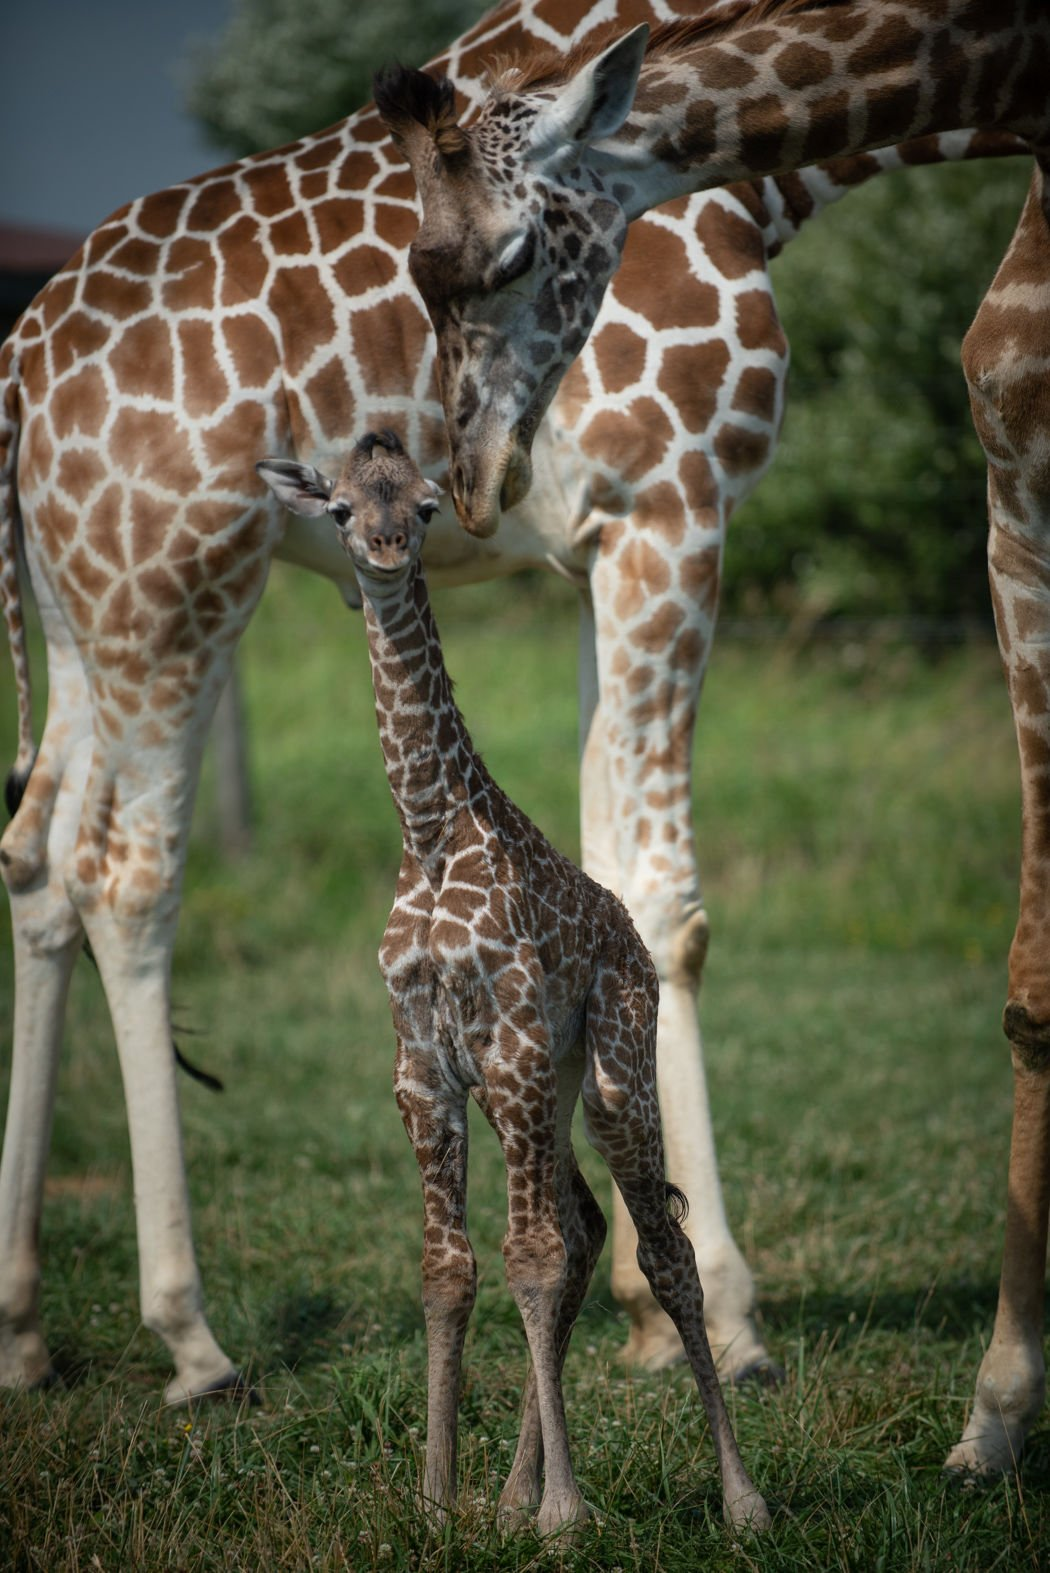 Baby Giraffe Born This Week At The Wilds Recent News Herald